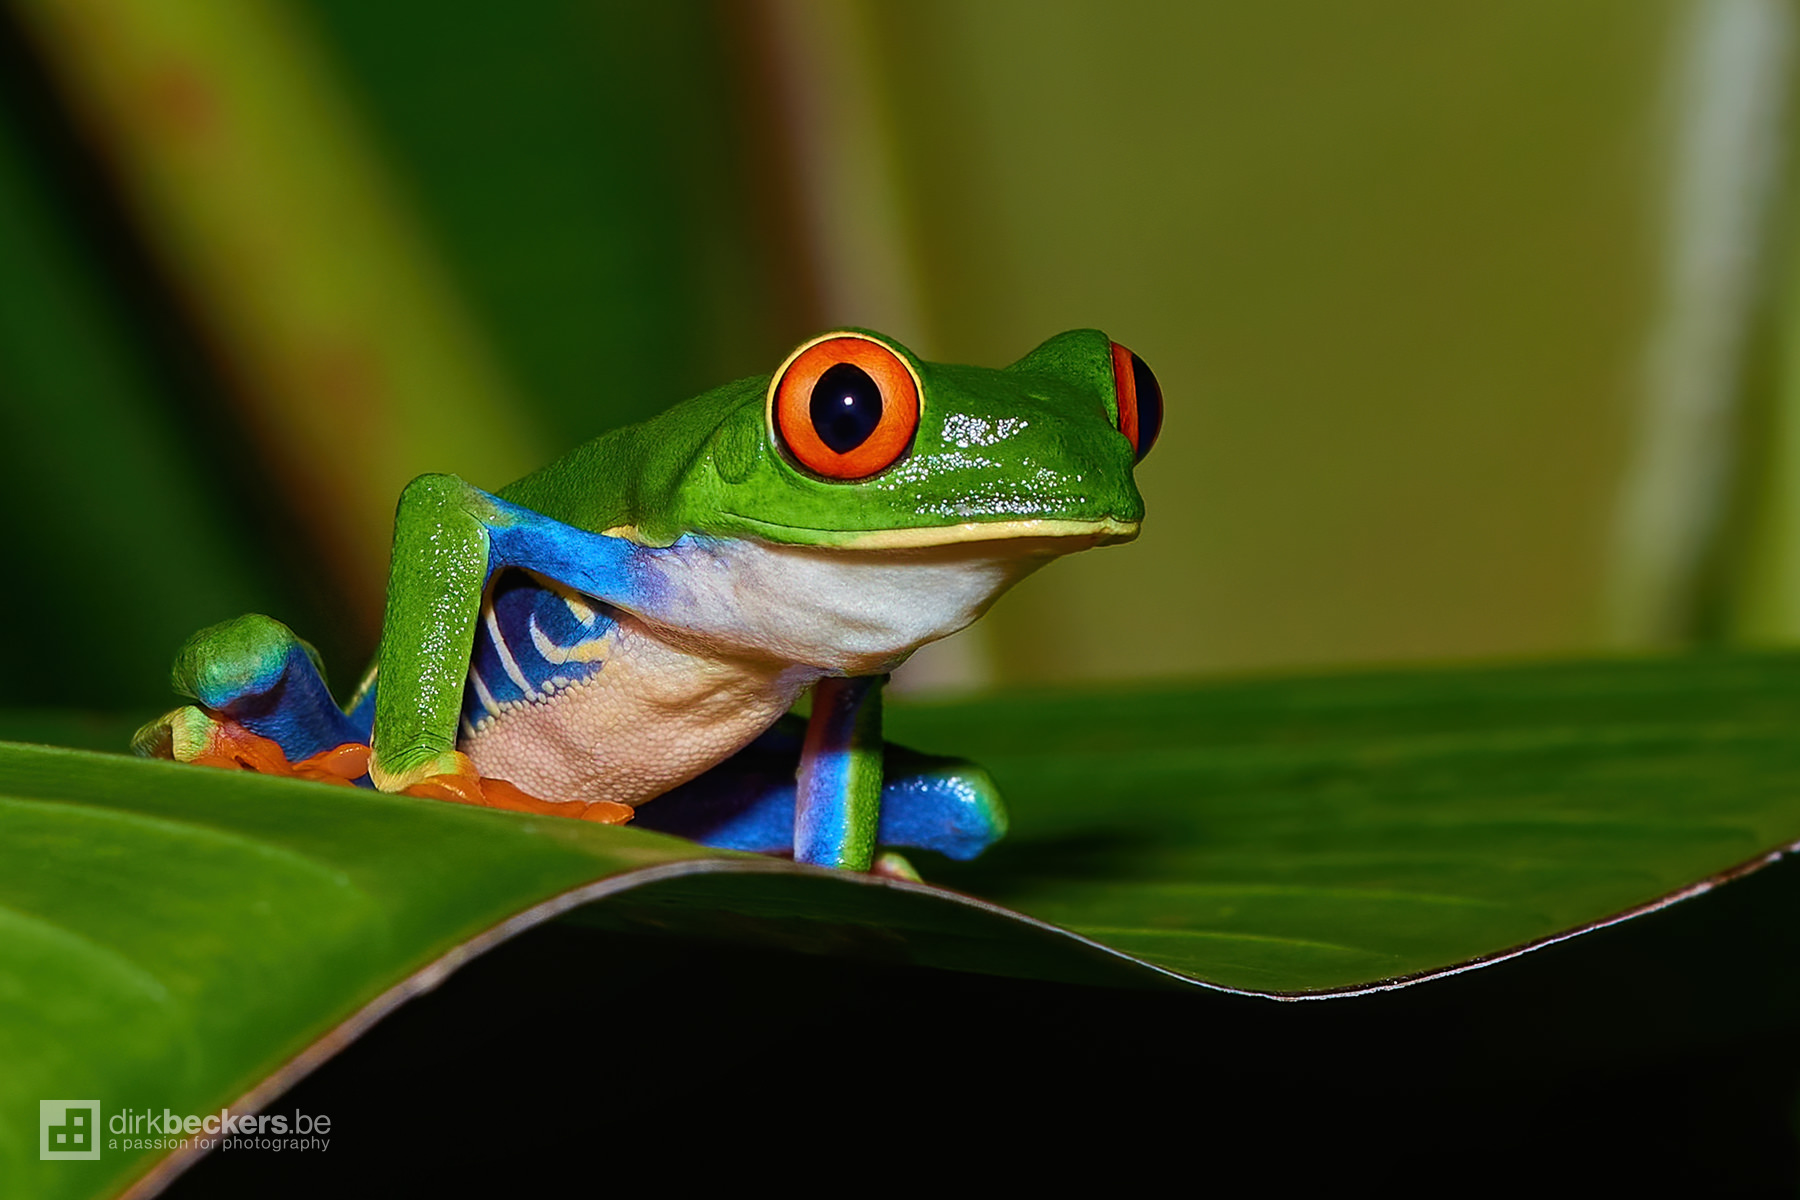 During my many evening walks into the cloud forest of Arenal in Costa Rica, I stumbled upon this little guy. The Red-eyed Tree Frog.